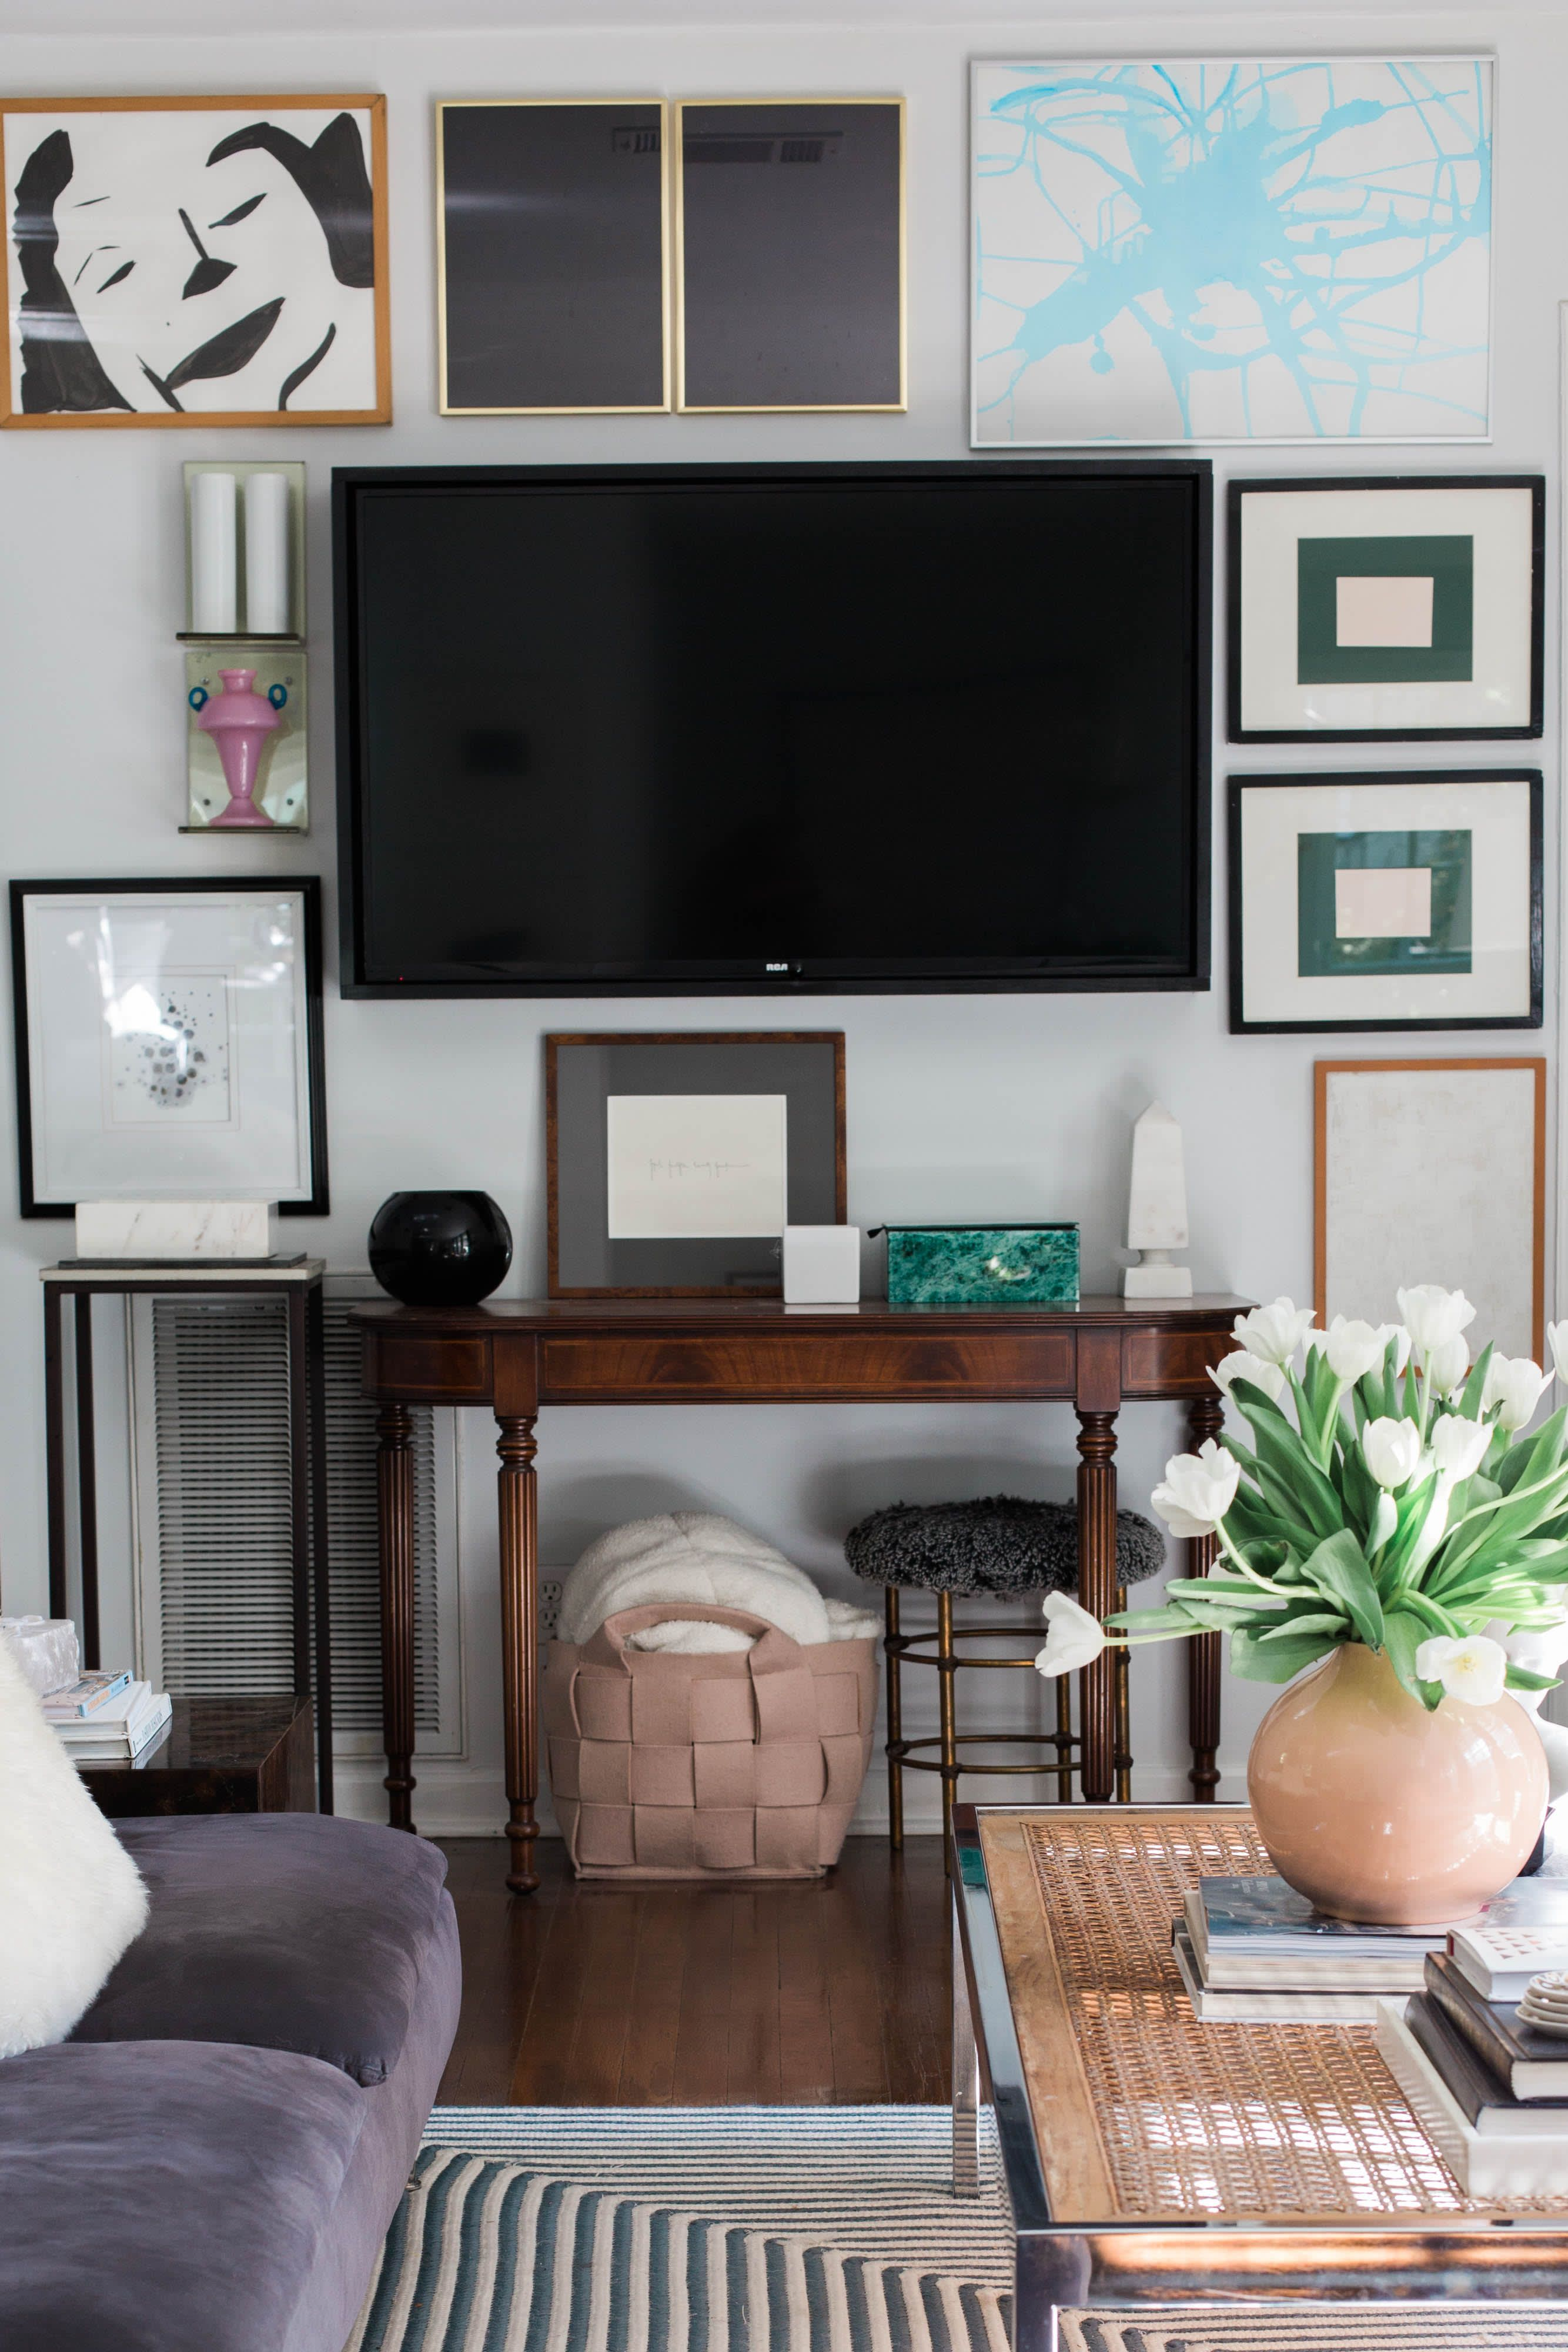 How To Make Your Tv Feel Like A Real Part Of Your Design Scheme Small Living Room Ideas With Tv Rustic Living Room Design Living Room Tv